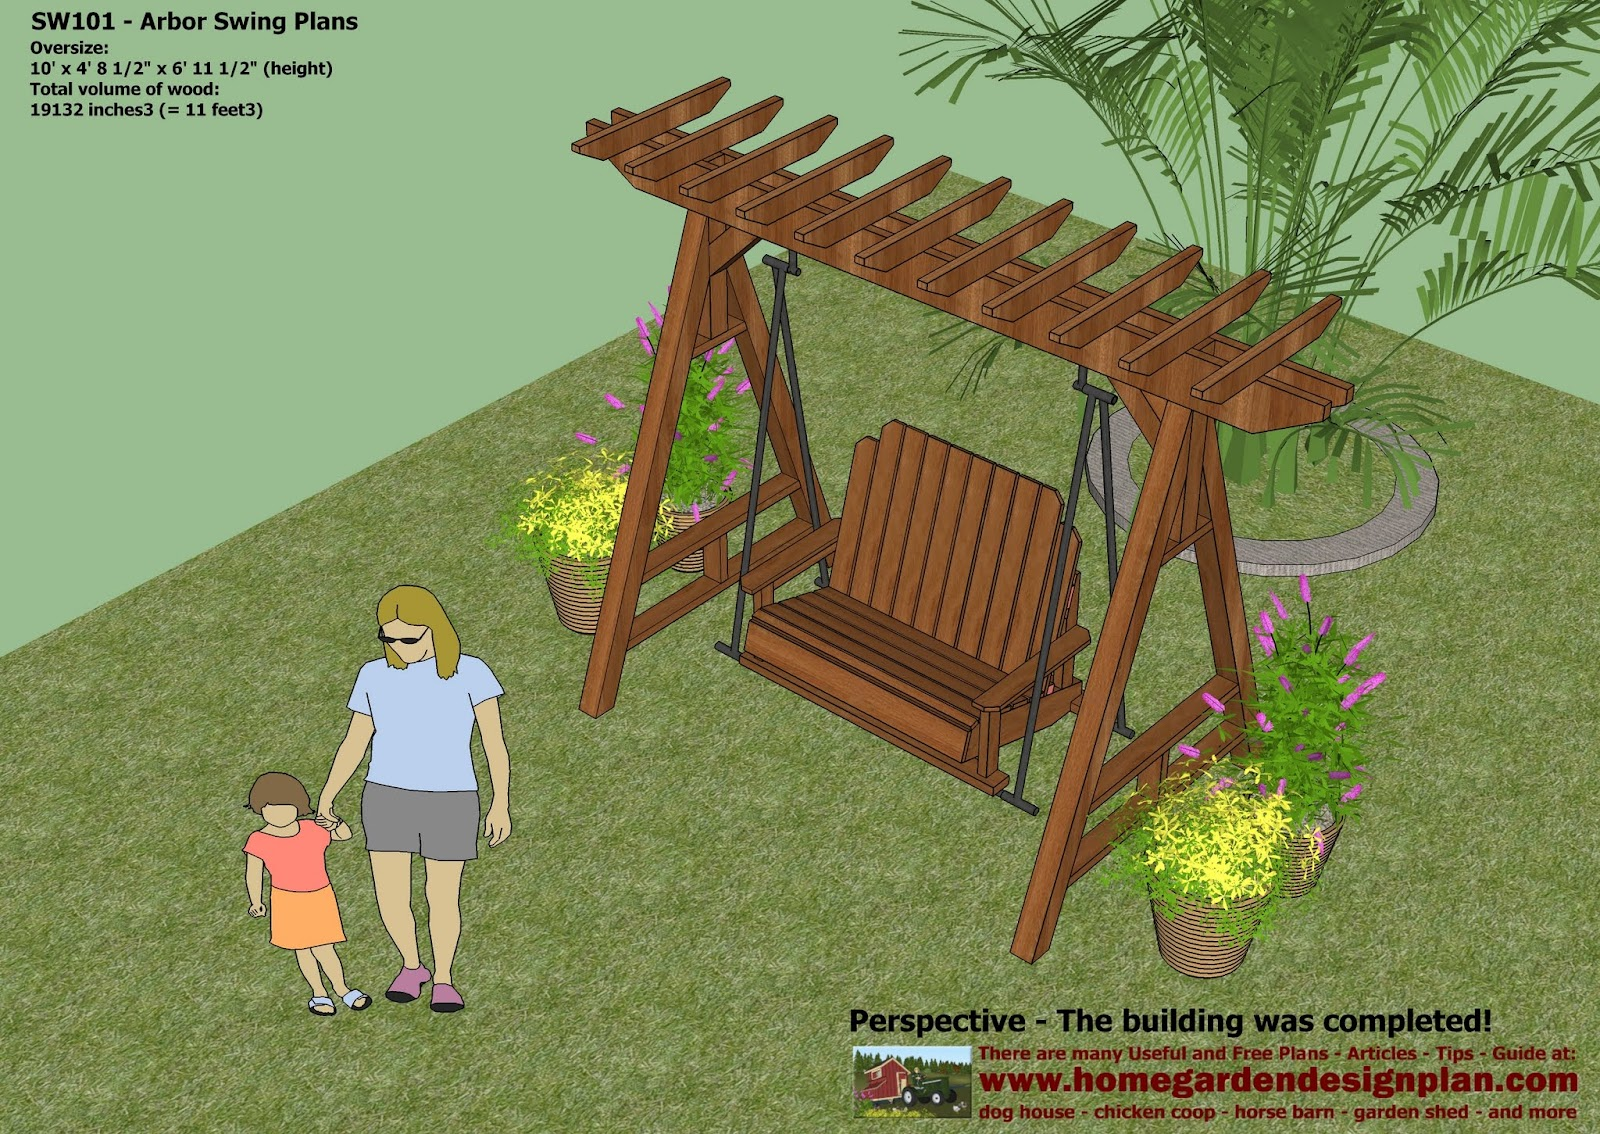 home garden plans sw101 arbor swing plans construction graden swing plans arbor swing design how to build a garden swing